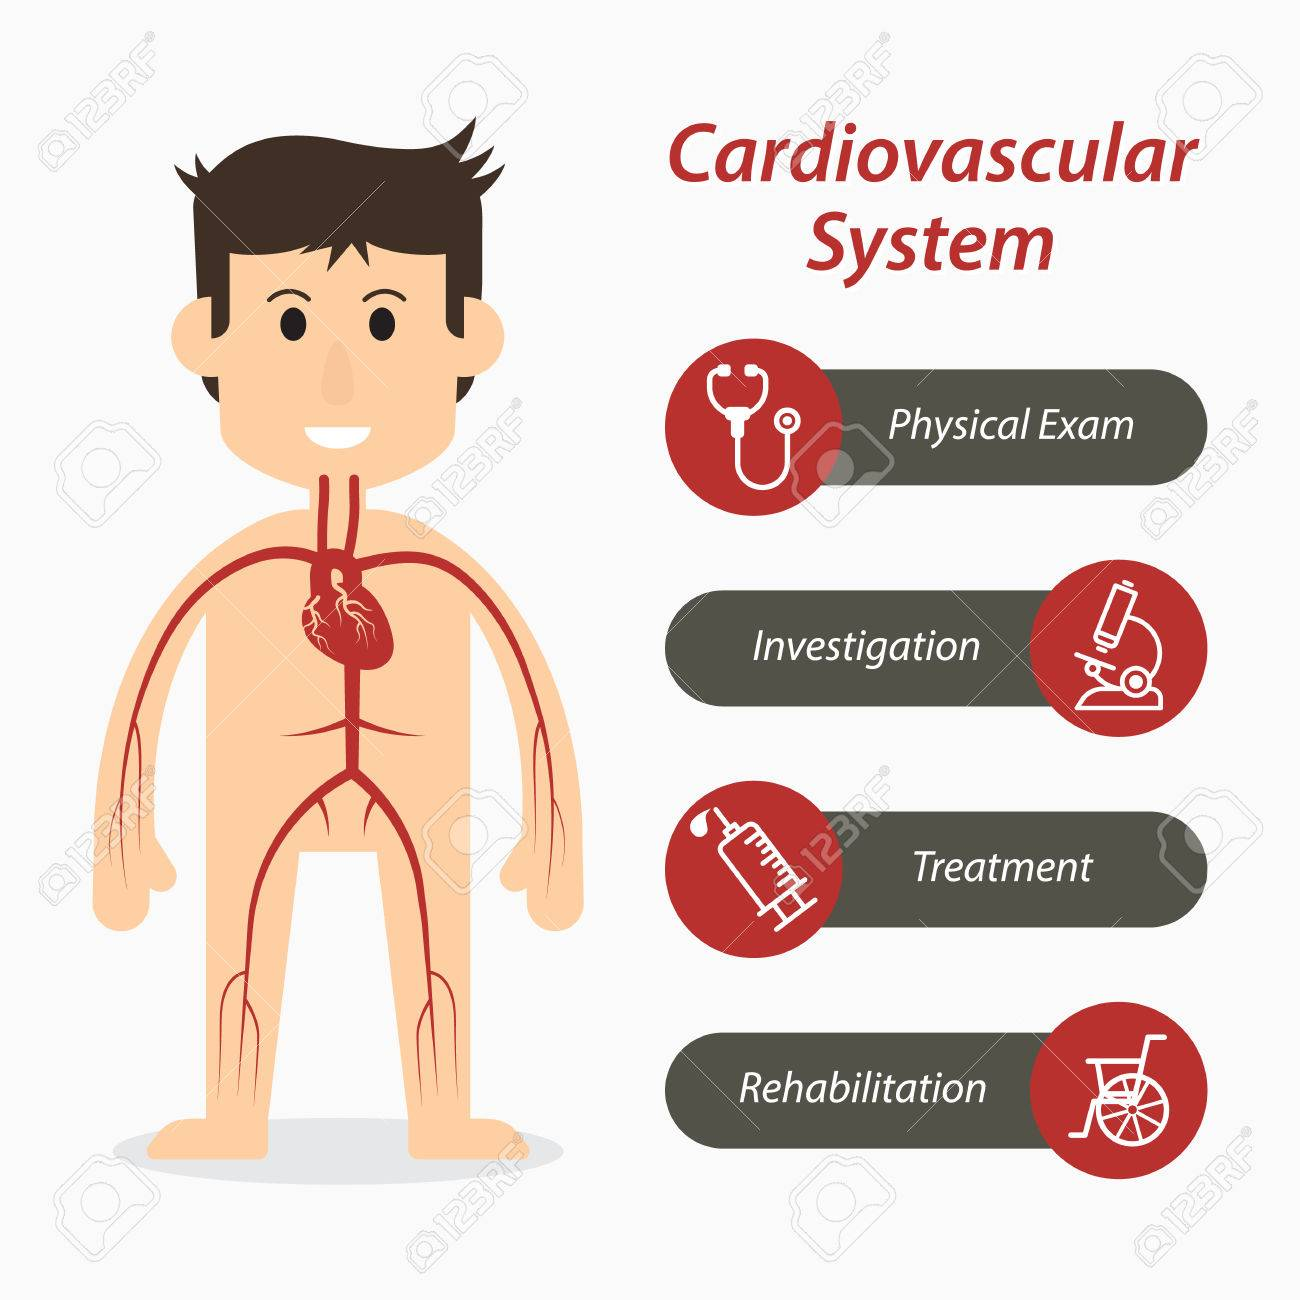 Cardiovascular system and medical line icon - 63892805